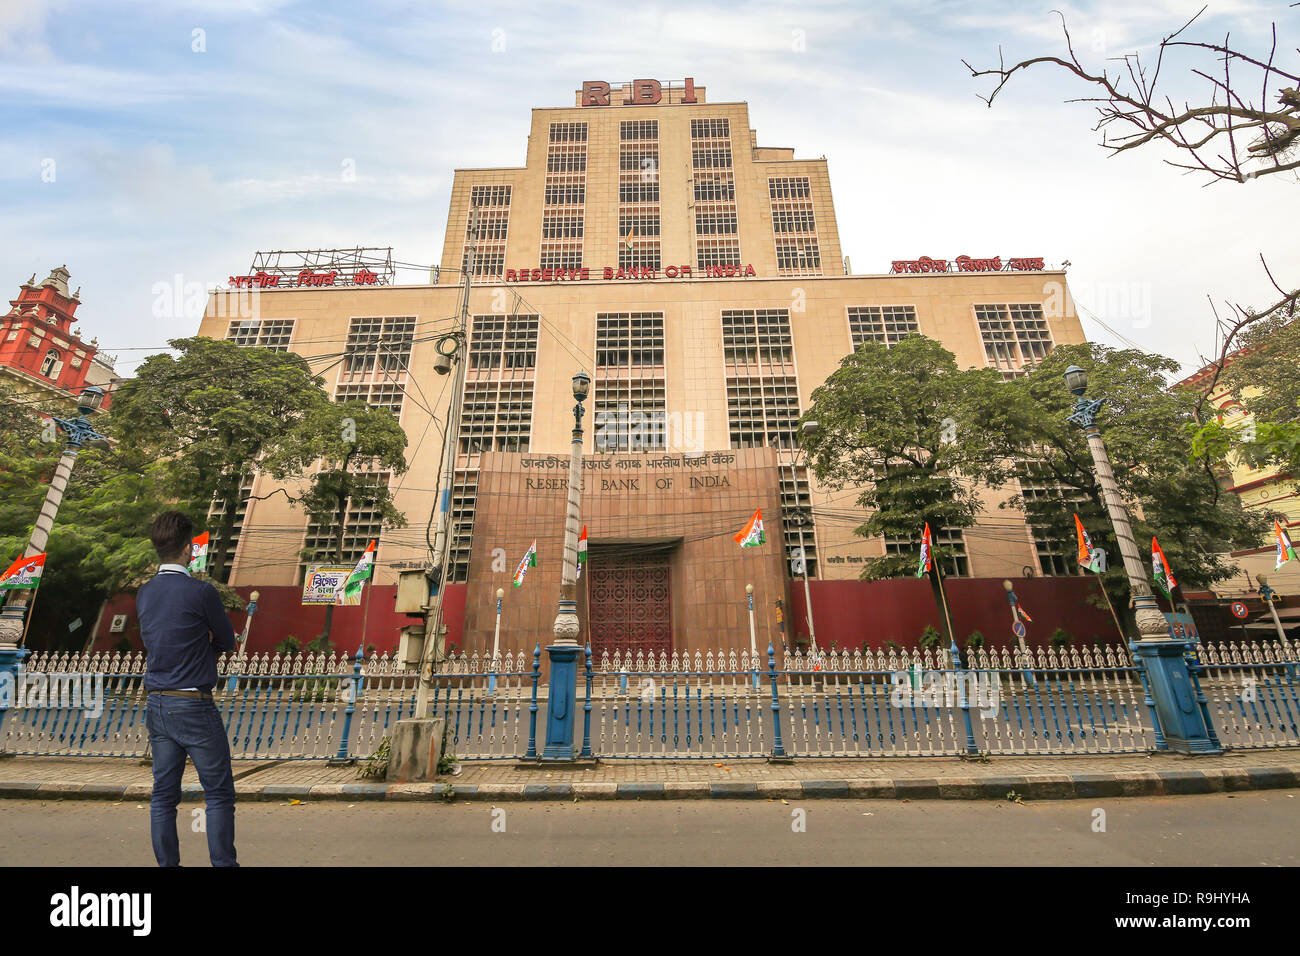 Young man looking at the Reserve Bank of India building at Dalhousie area of Kolkata with view of early morning city road - Stock Image